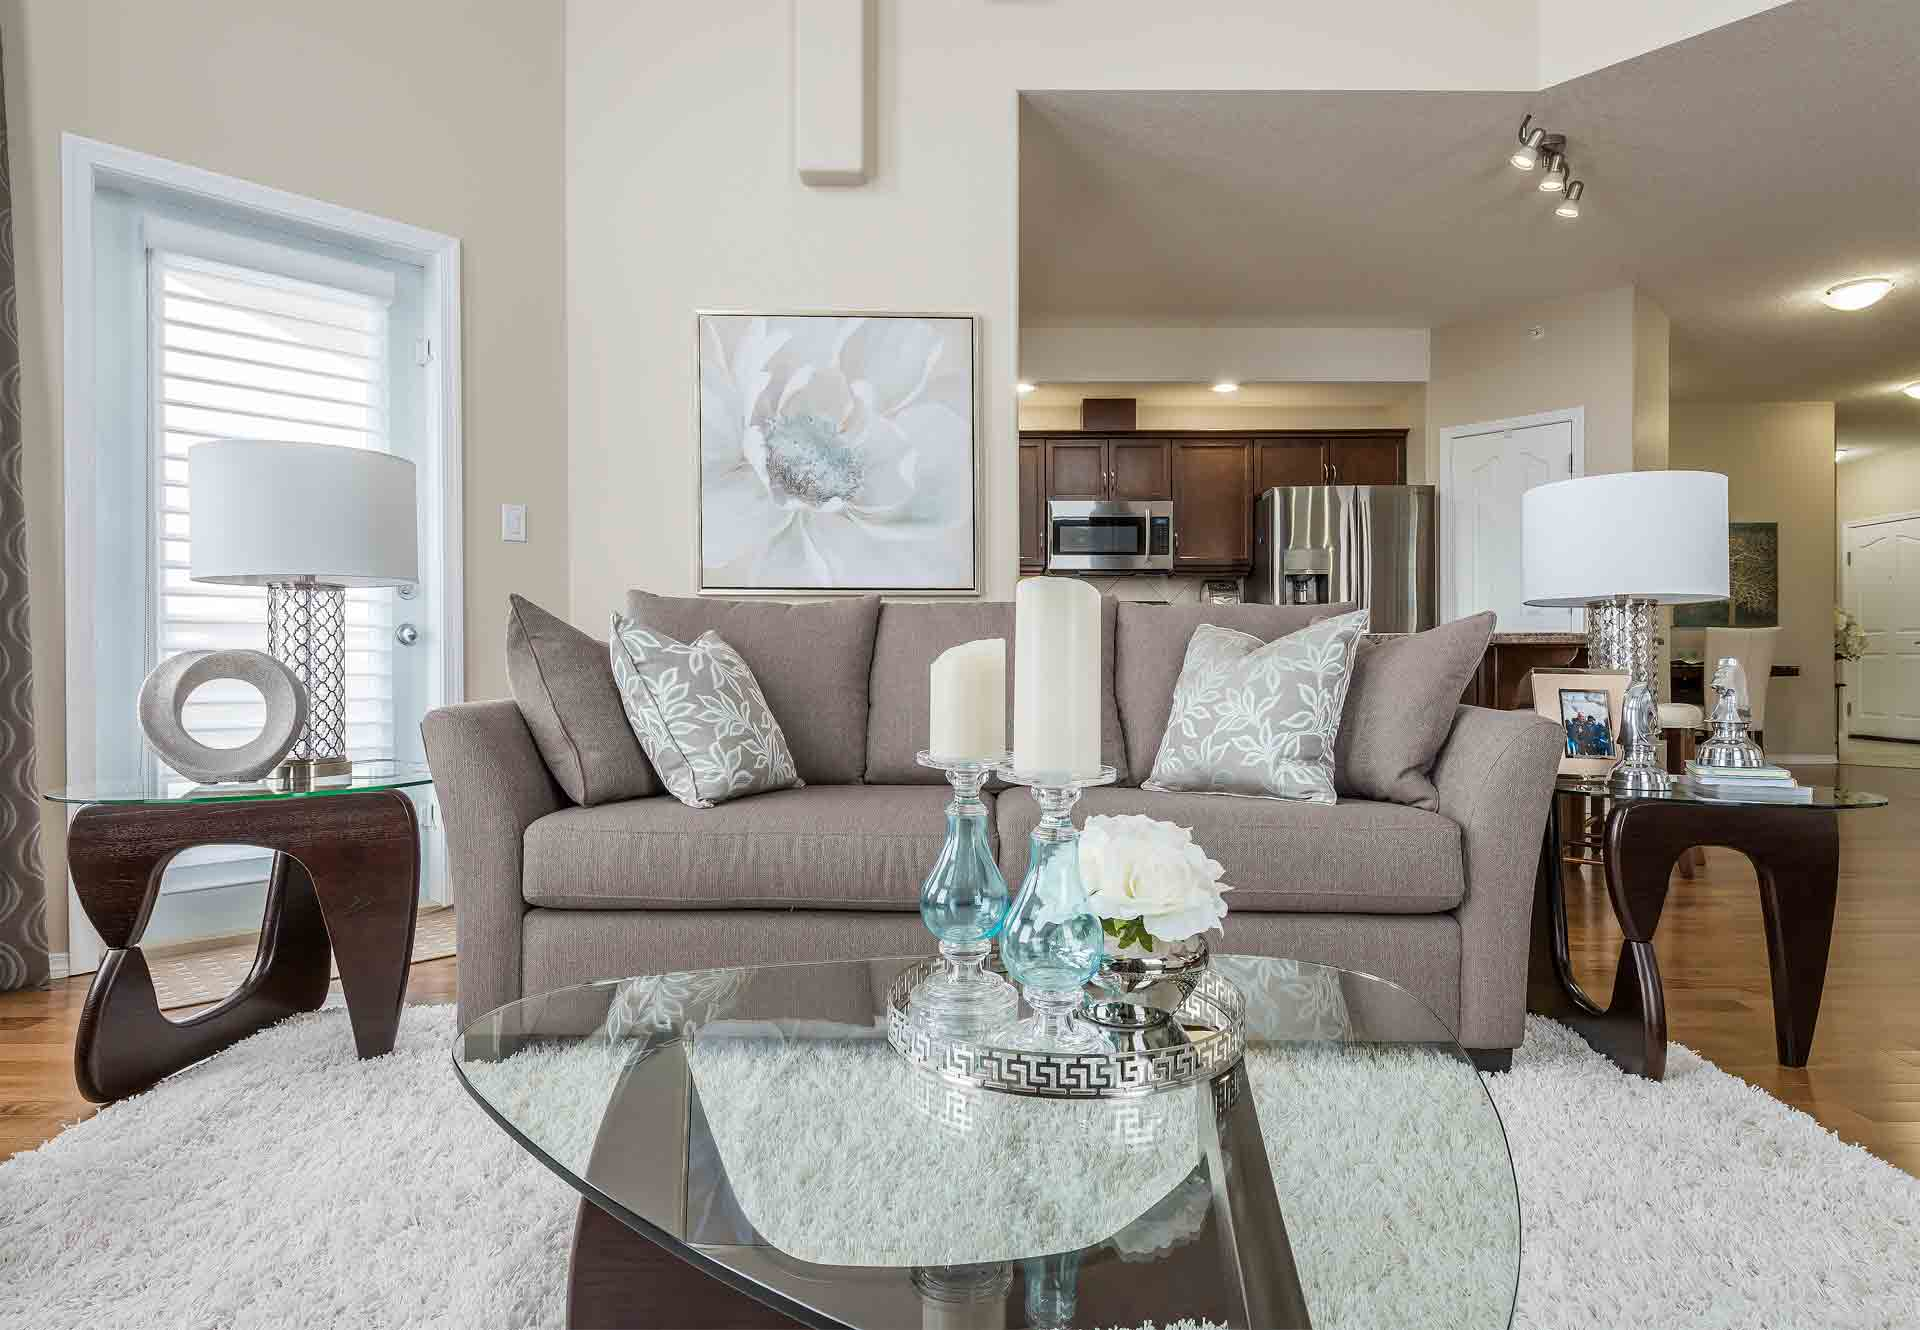 Interior Designing Project in Rutherford, Edmonton